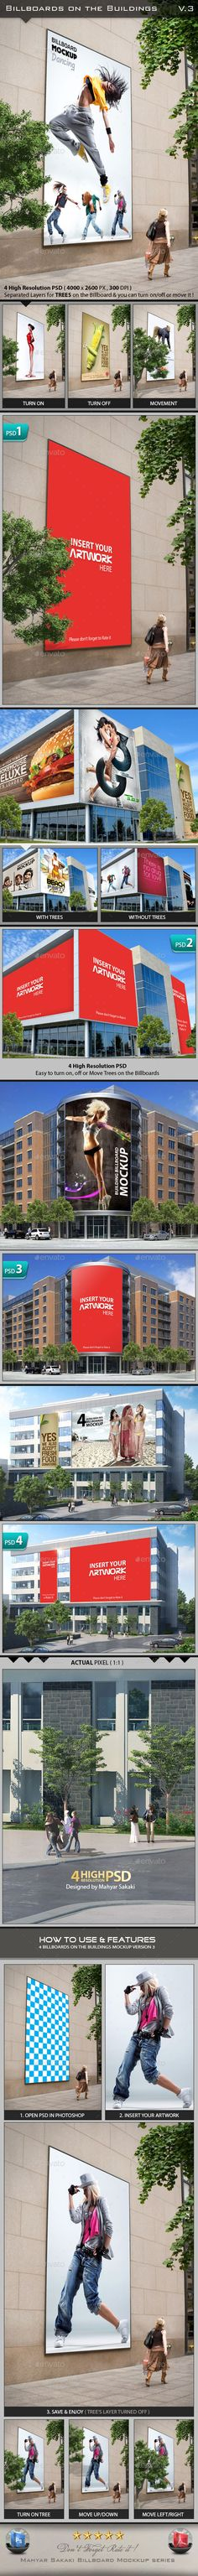 Buy Billboards On The Buildings Mockup by on GraphicRiver. Billboards On The Buildings Mockup Version 3 This item pack include 4 Exclusive High resolution PSD files and you can. Street Banners, Class Presentation, Real Estate Advertising, Computer Drawing, Billboard Design, Business Illustration, Mockup Templates, Signage, Editorial